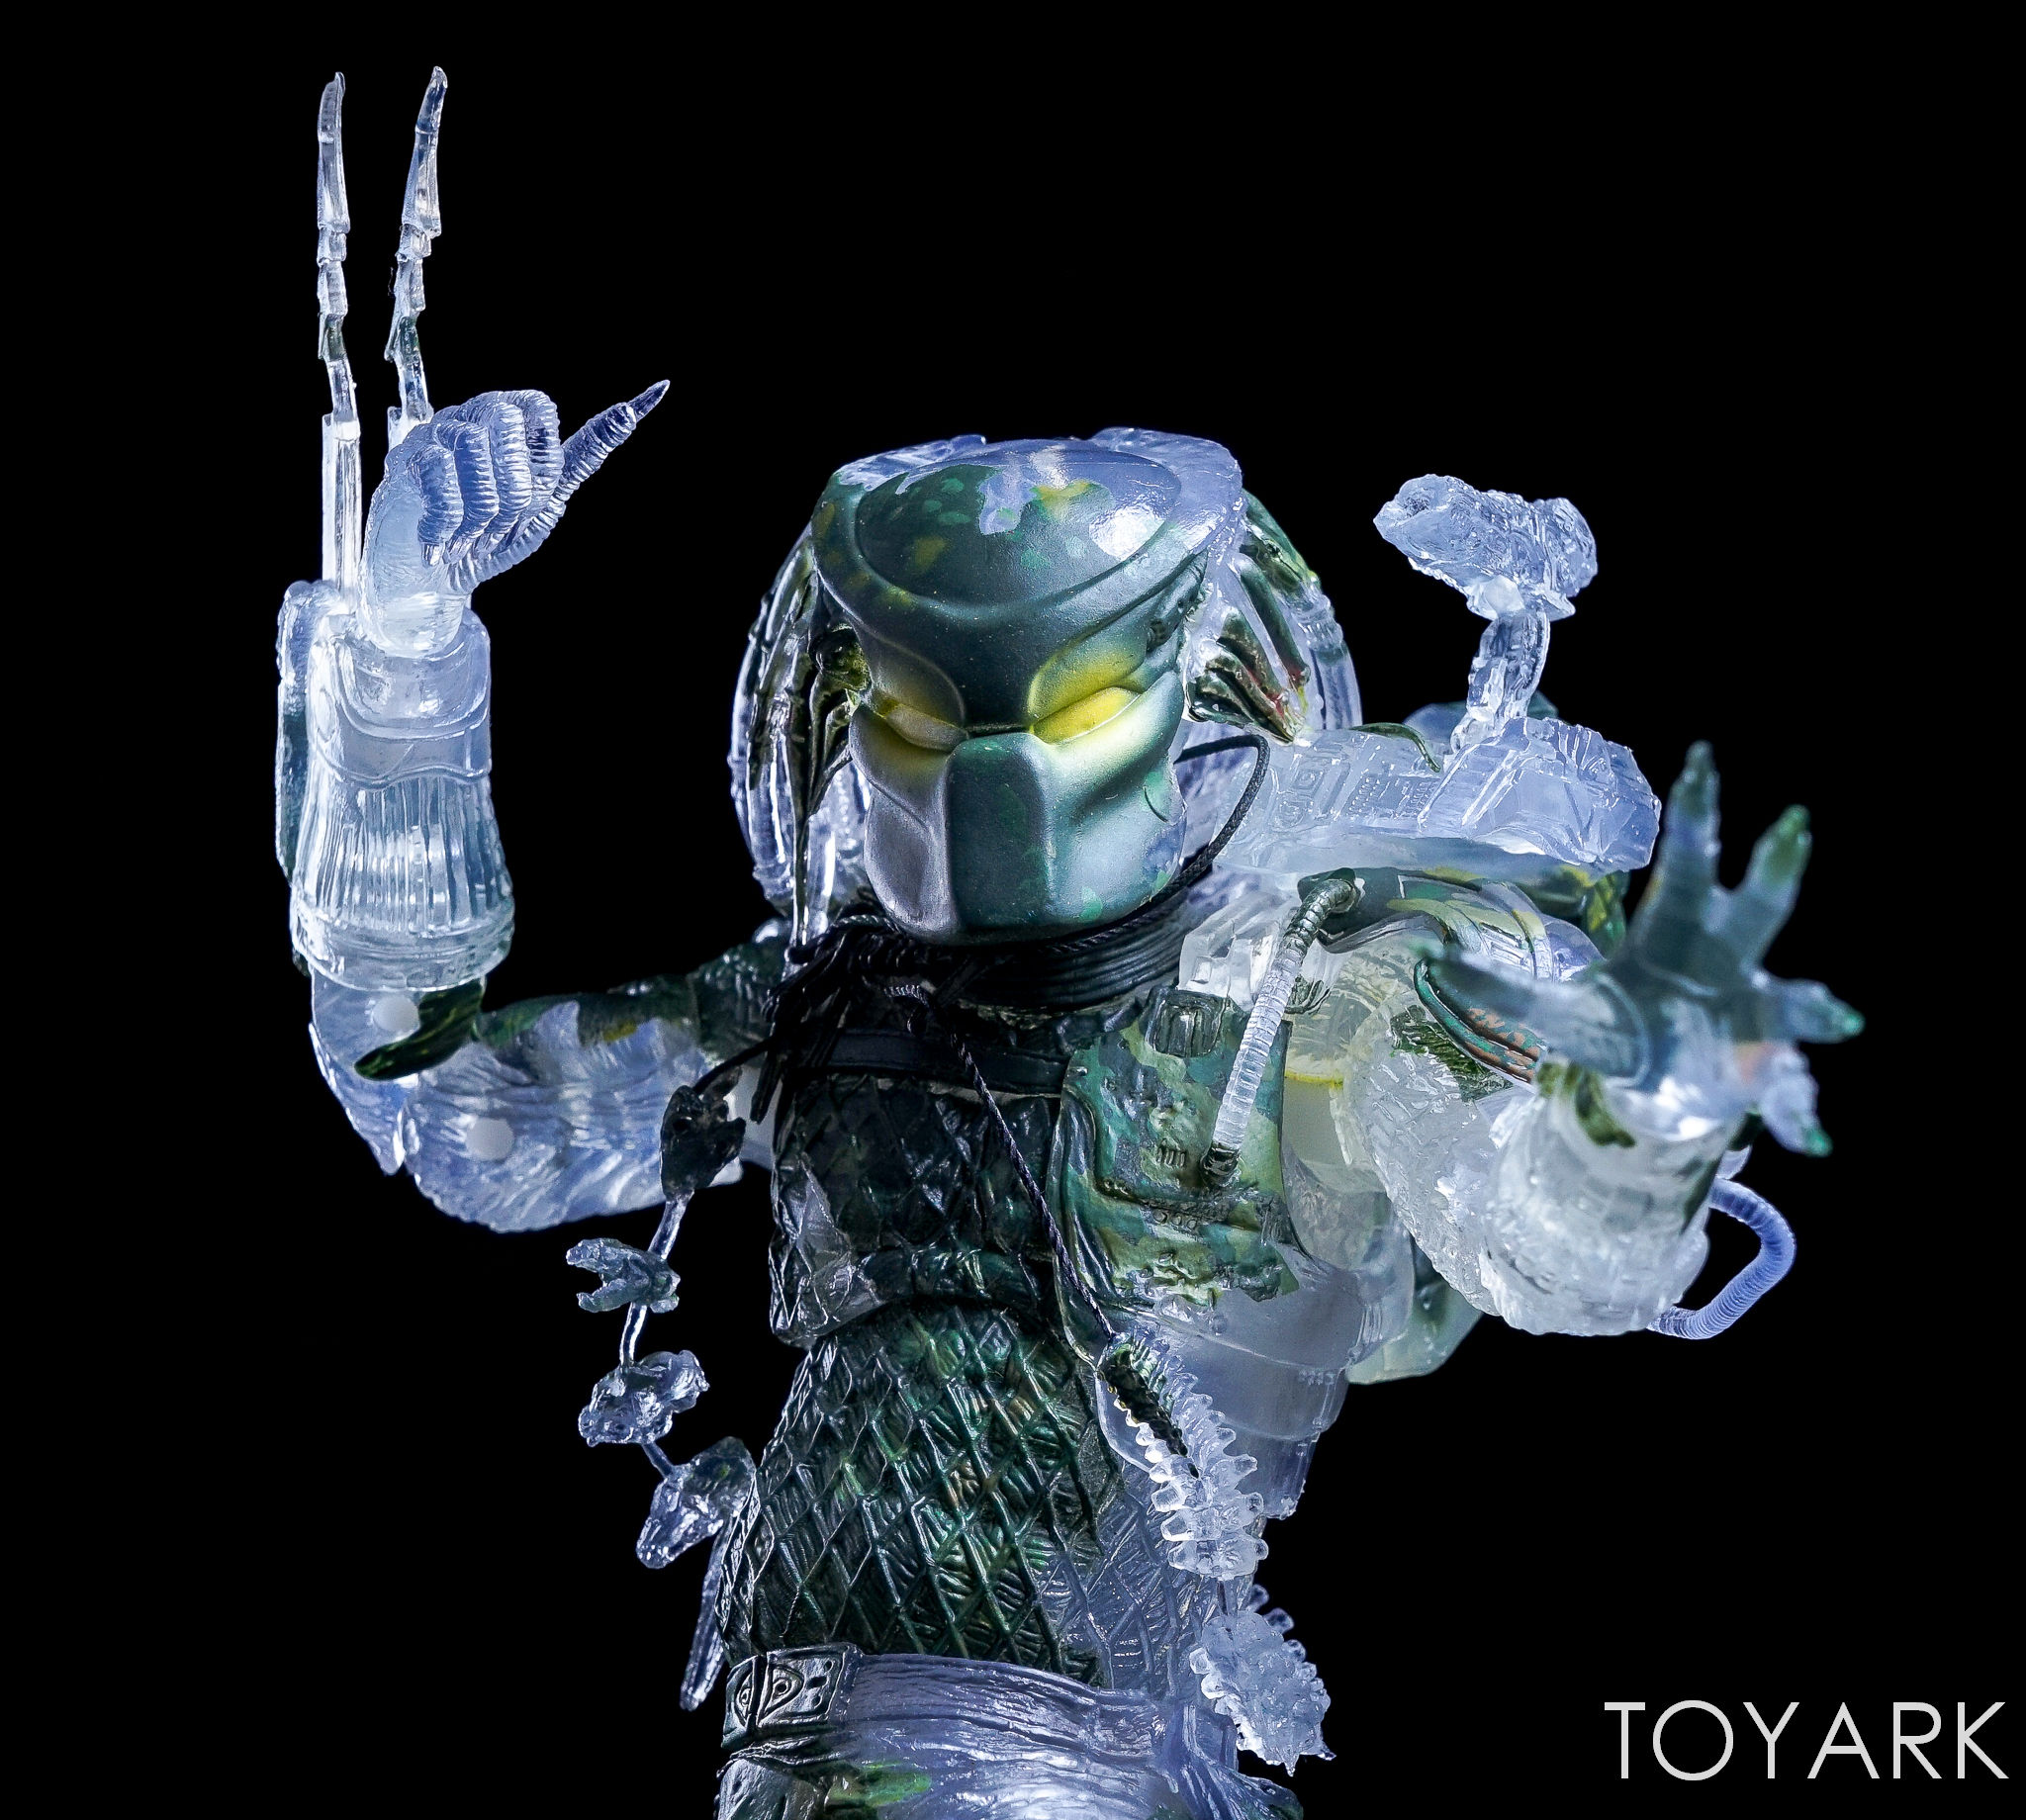 http://news.toyark.com/wp-content/uploads/sites/4/2017/03/NECA-Jungle-Demon-Predator-016.jpg